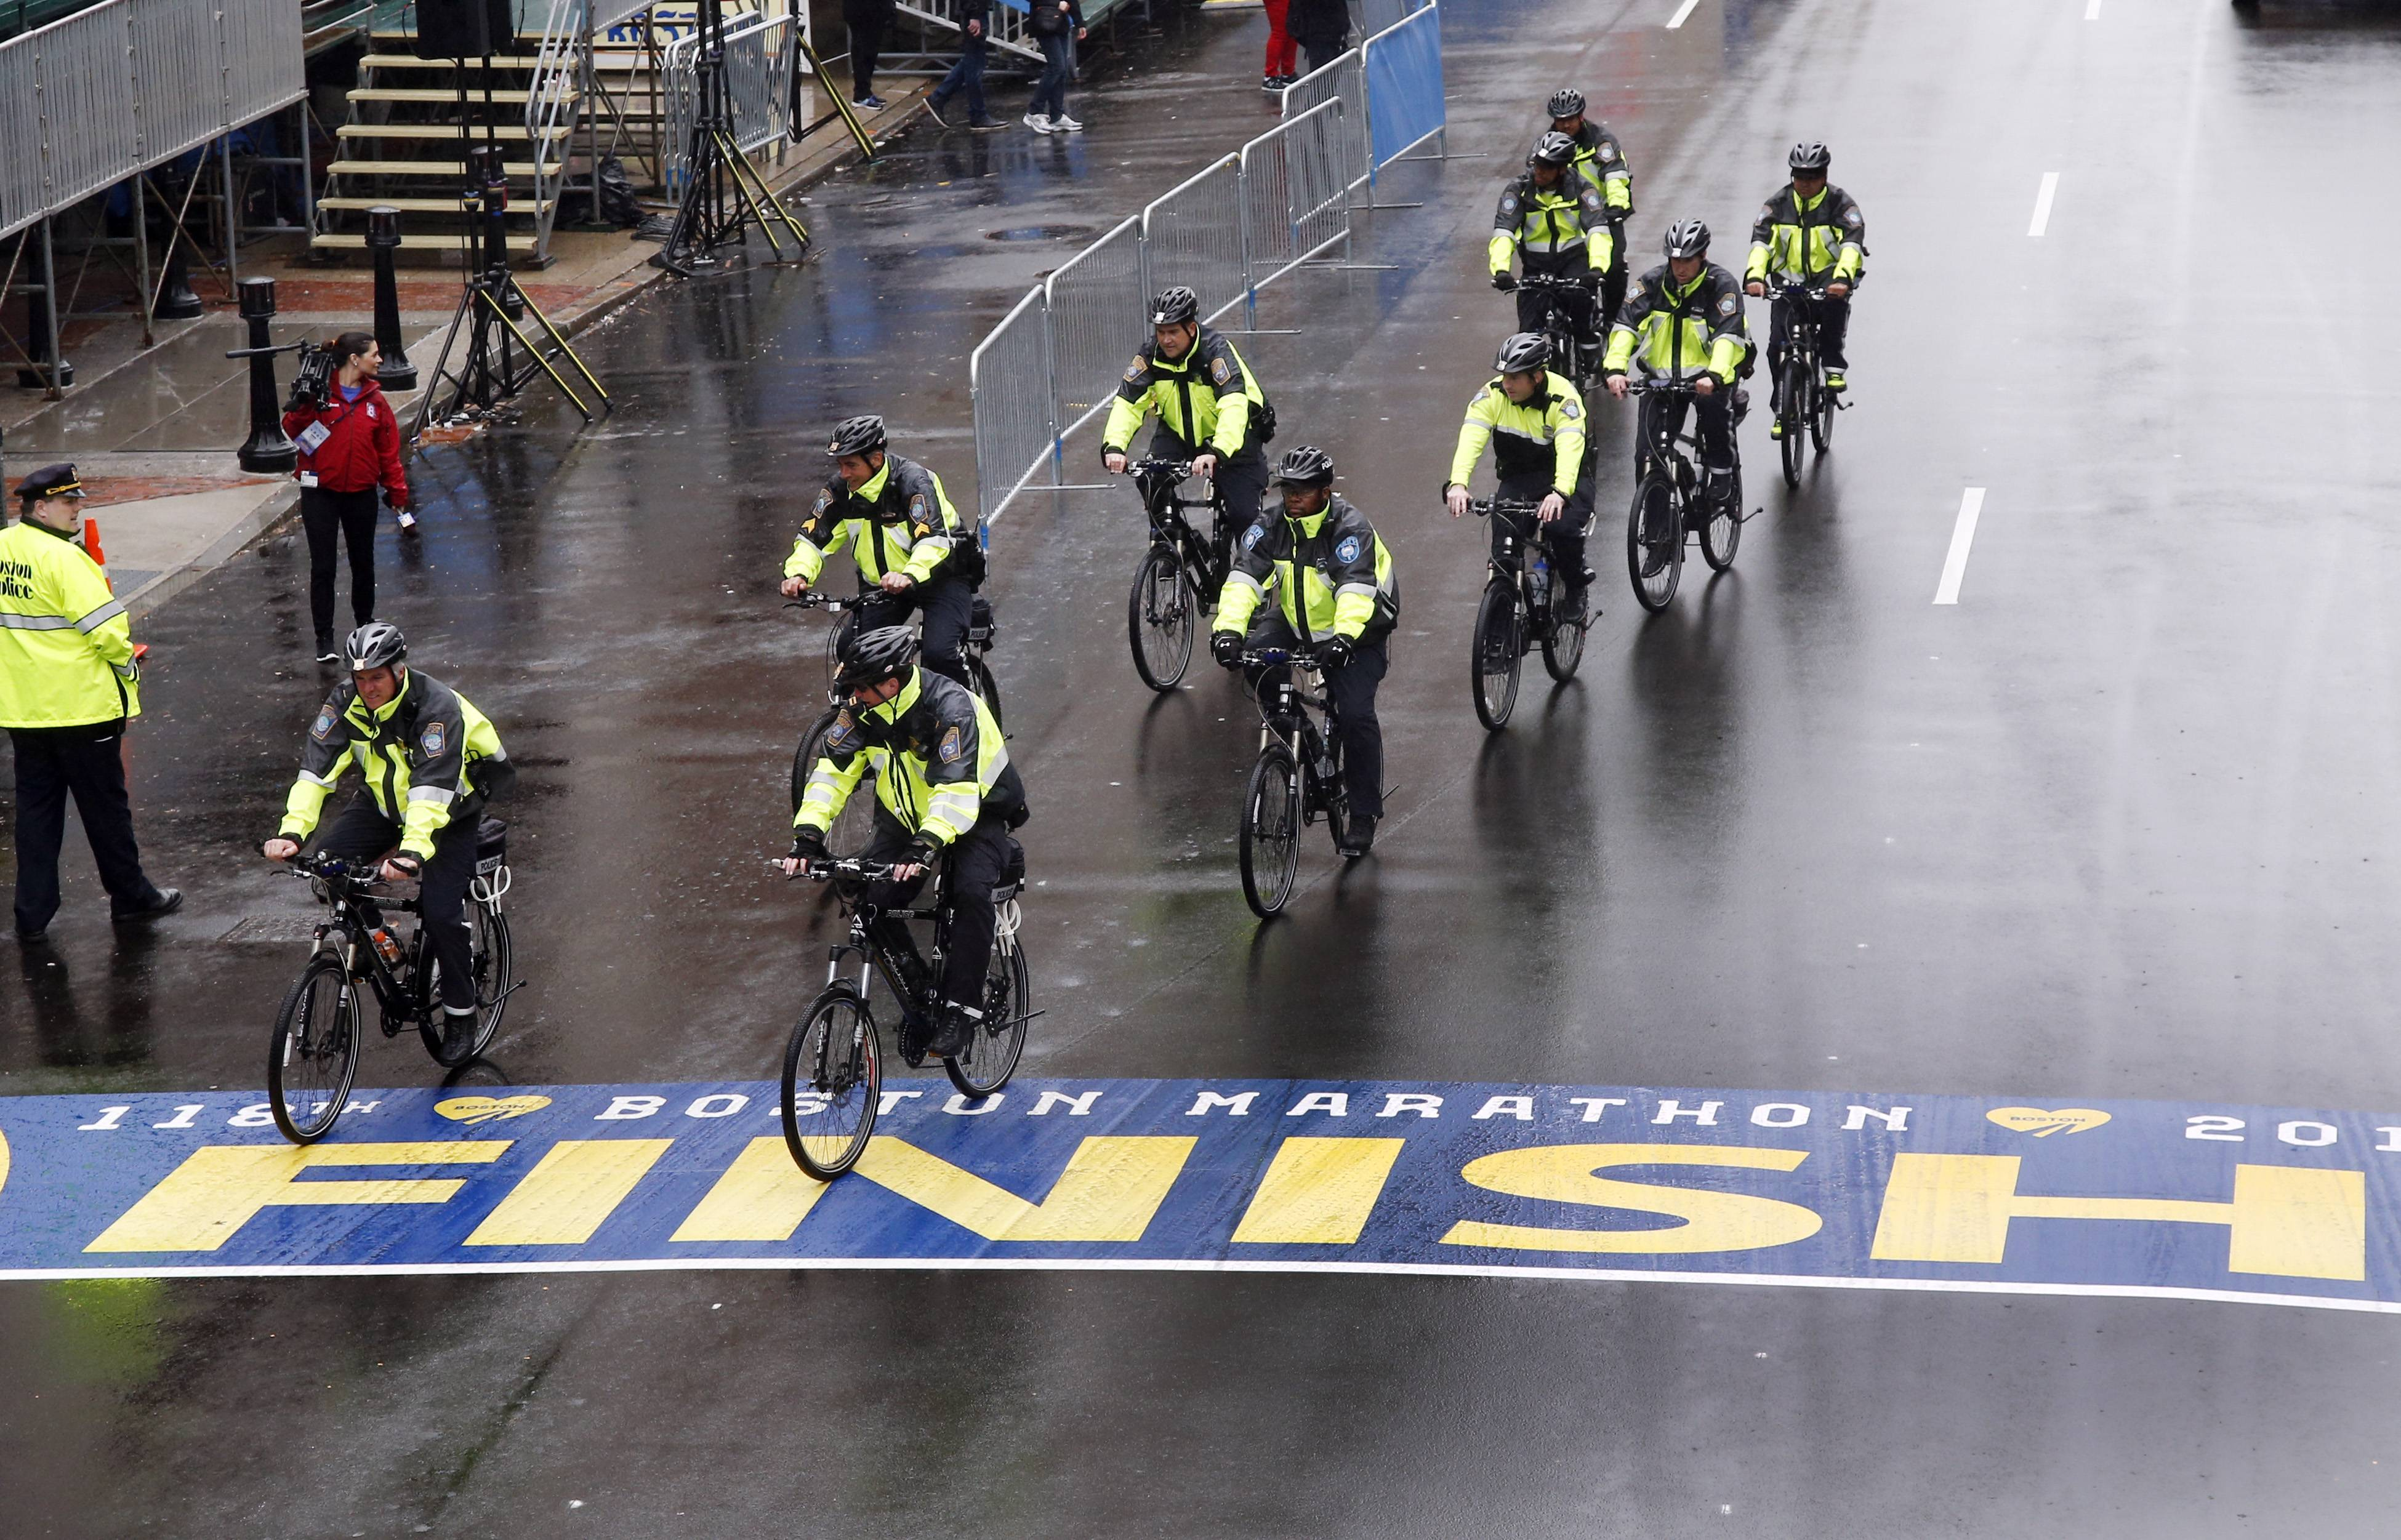 Police on bikes cycle across the Boston Marathon finish line Tuesday prior to a remembrance ceremony for family members and survivors of the 2013 Boston Marathon bombing on Boylston Street in Boston.